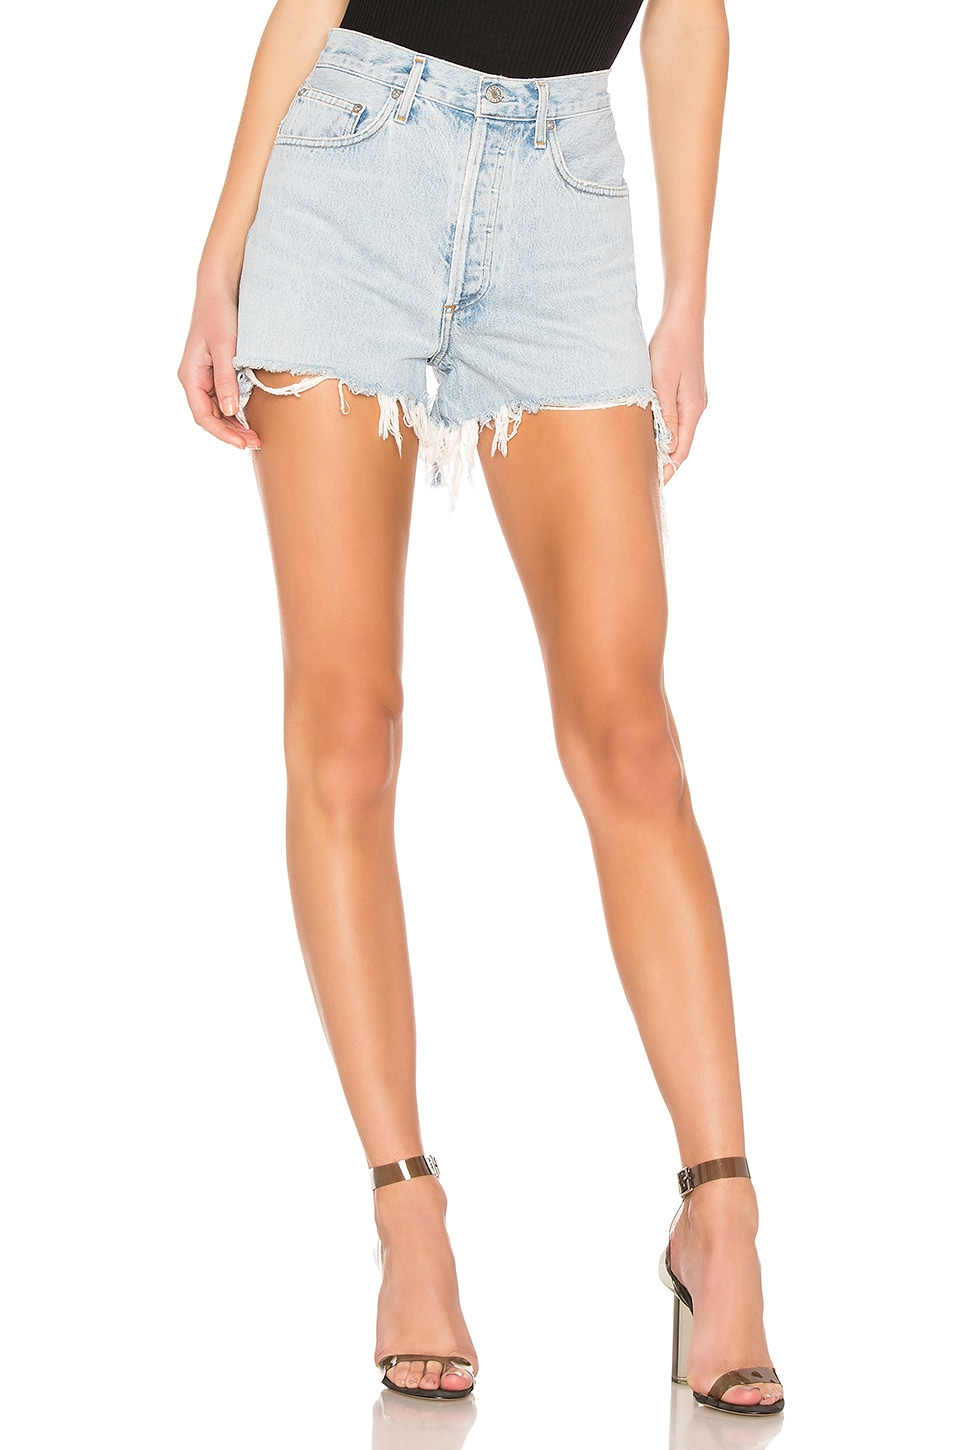 Dee Short                   AGOLDE                                                                                                                                                     Sale price:                                                                        CA$ 100.70                                                                                                  Previous price:                                                                       CA$ 167.39 4